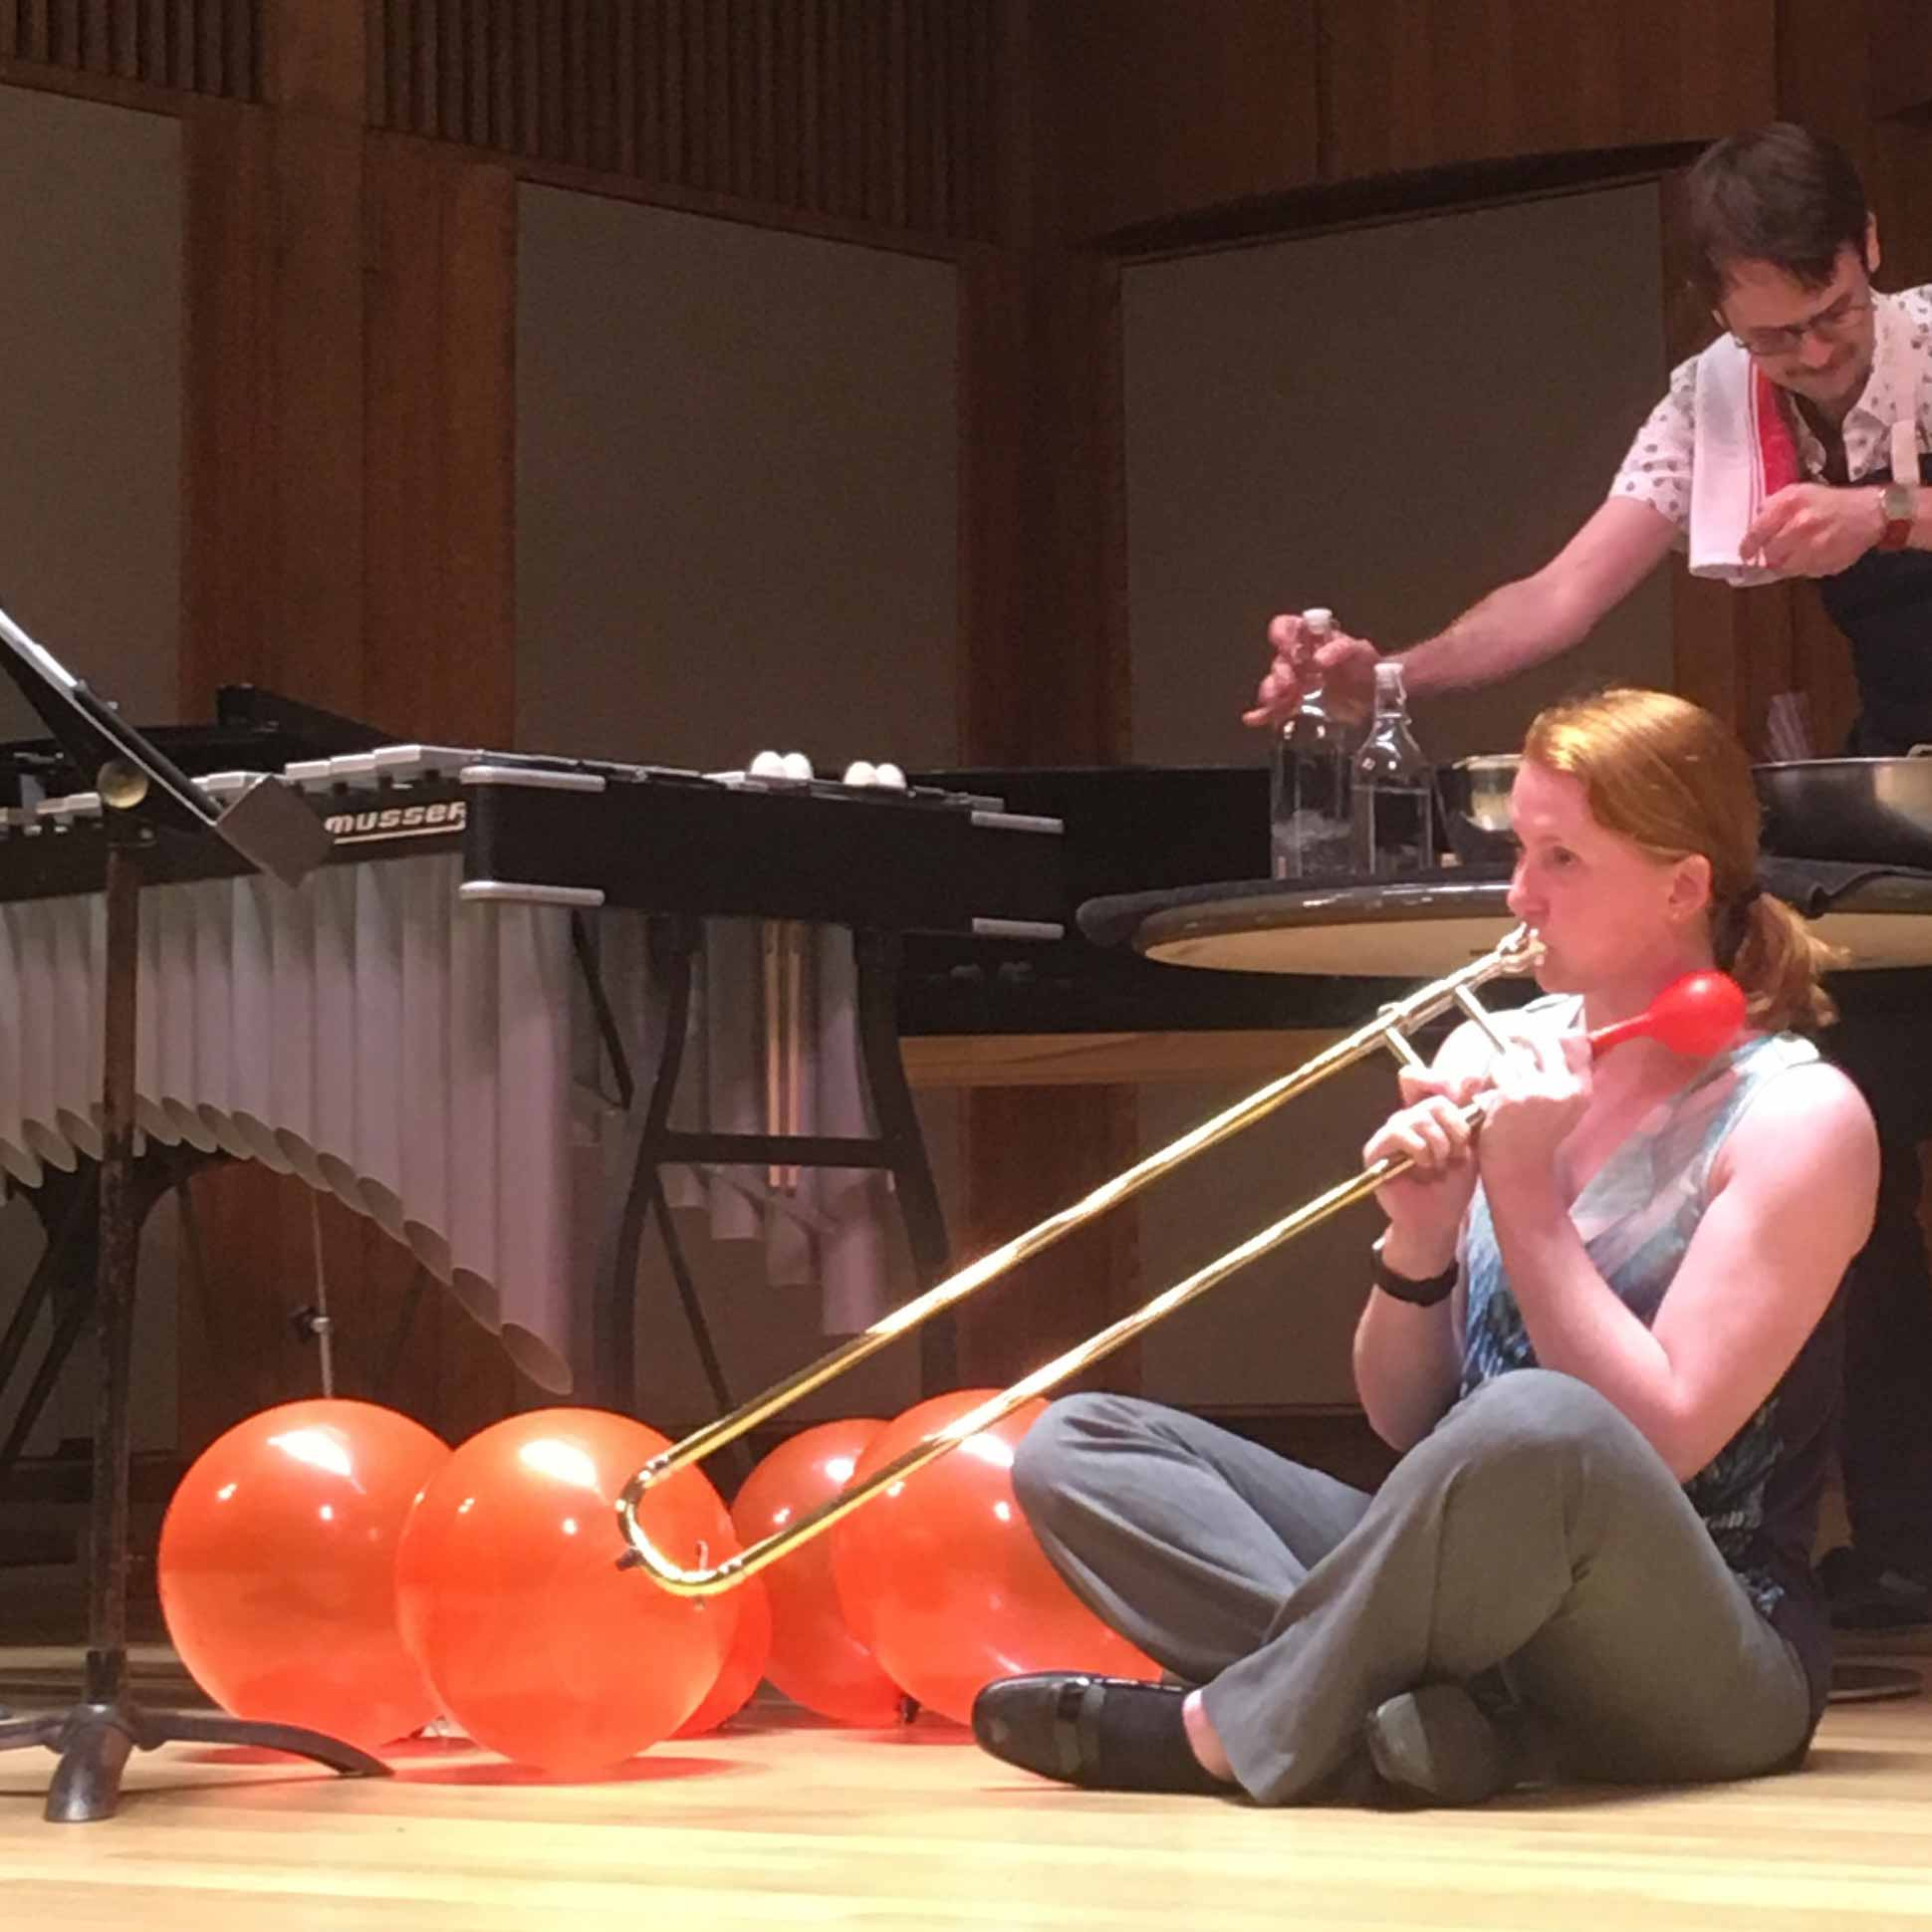 Musician uses trombone to inflate balloons